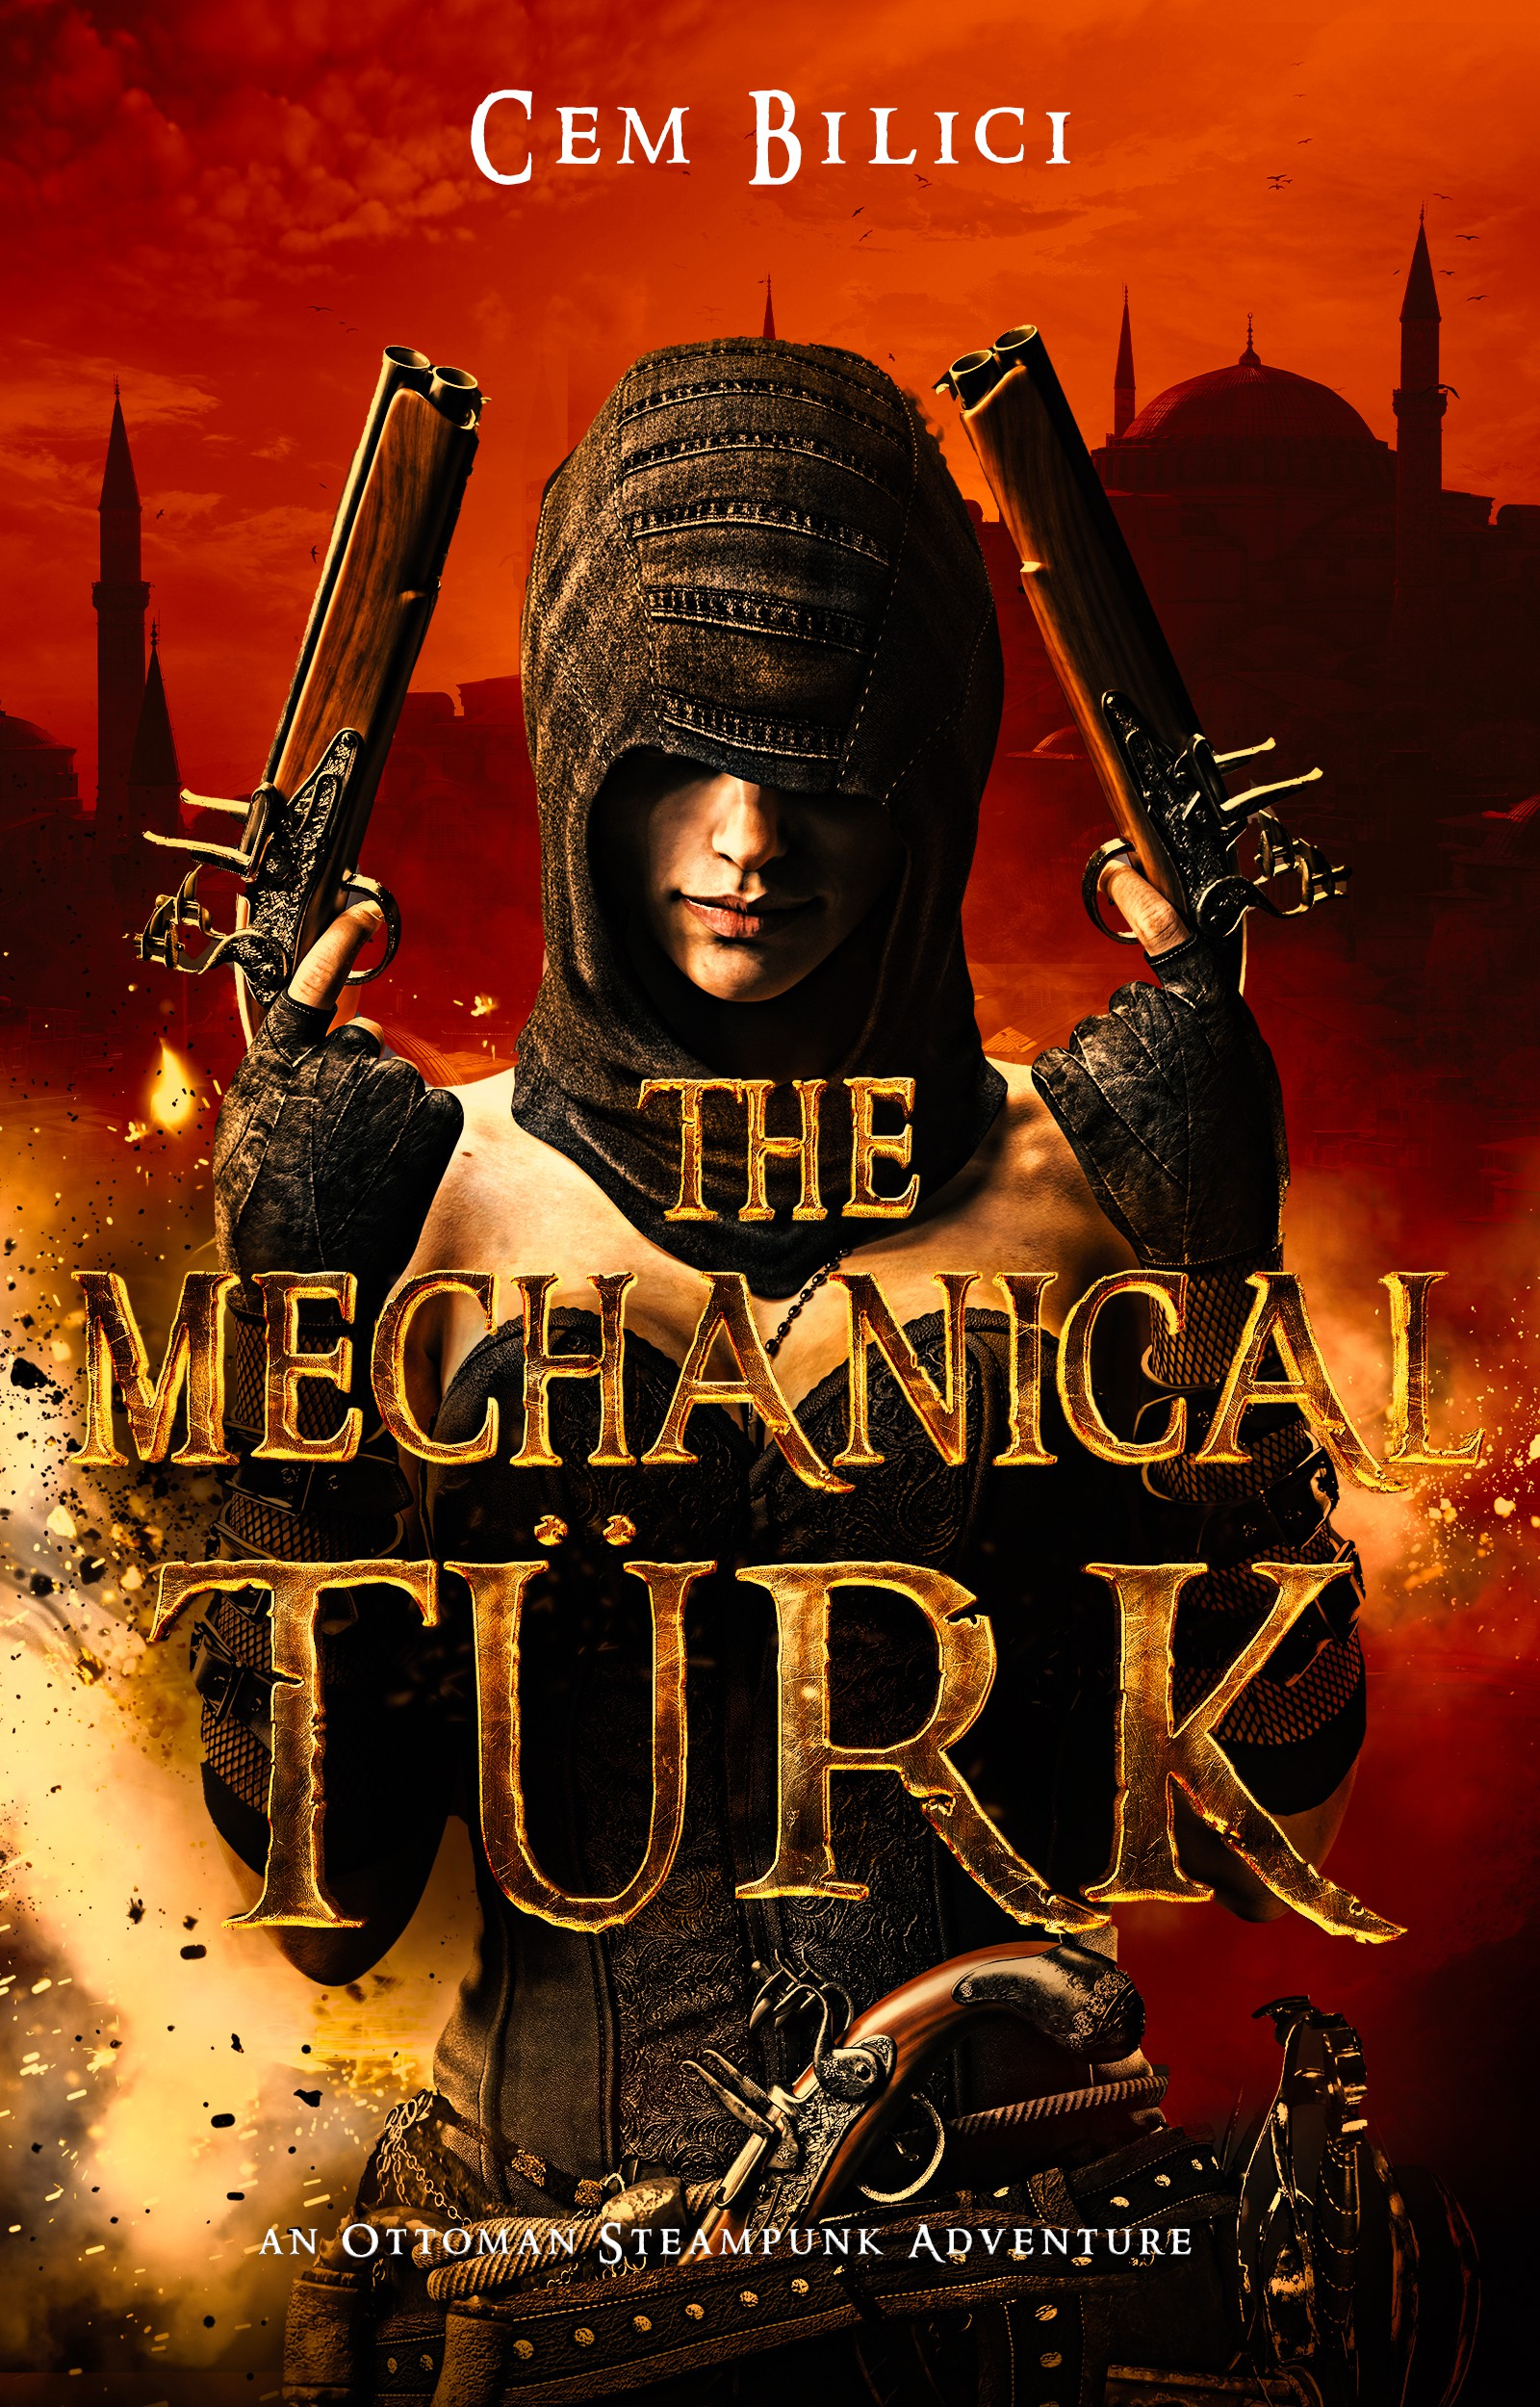 Steampunk book cover - The Mechanical Turk